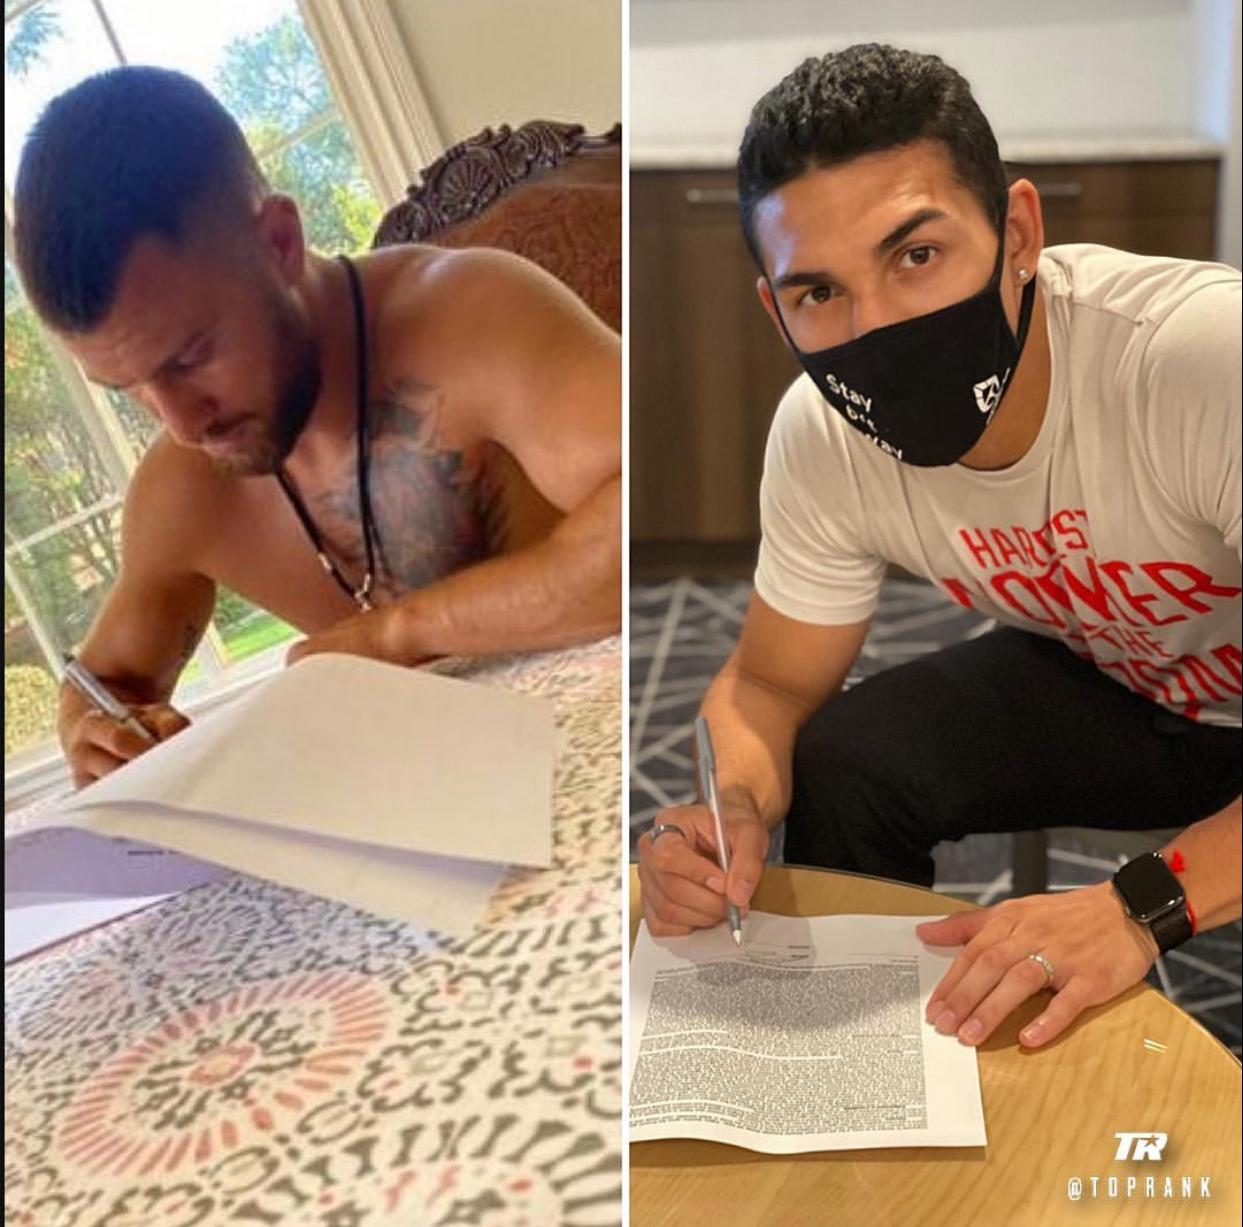 Loma and Theofimo signed contract for their fight on October 17